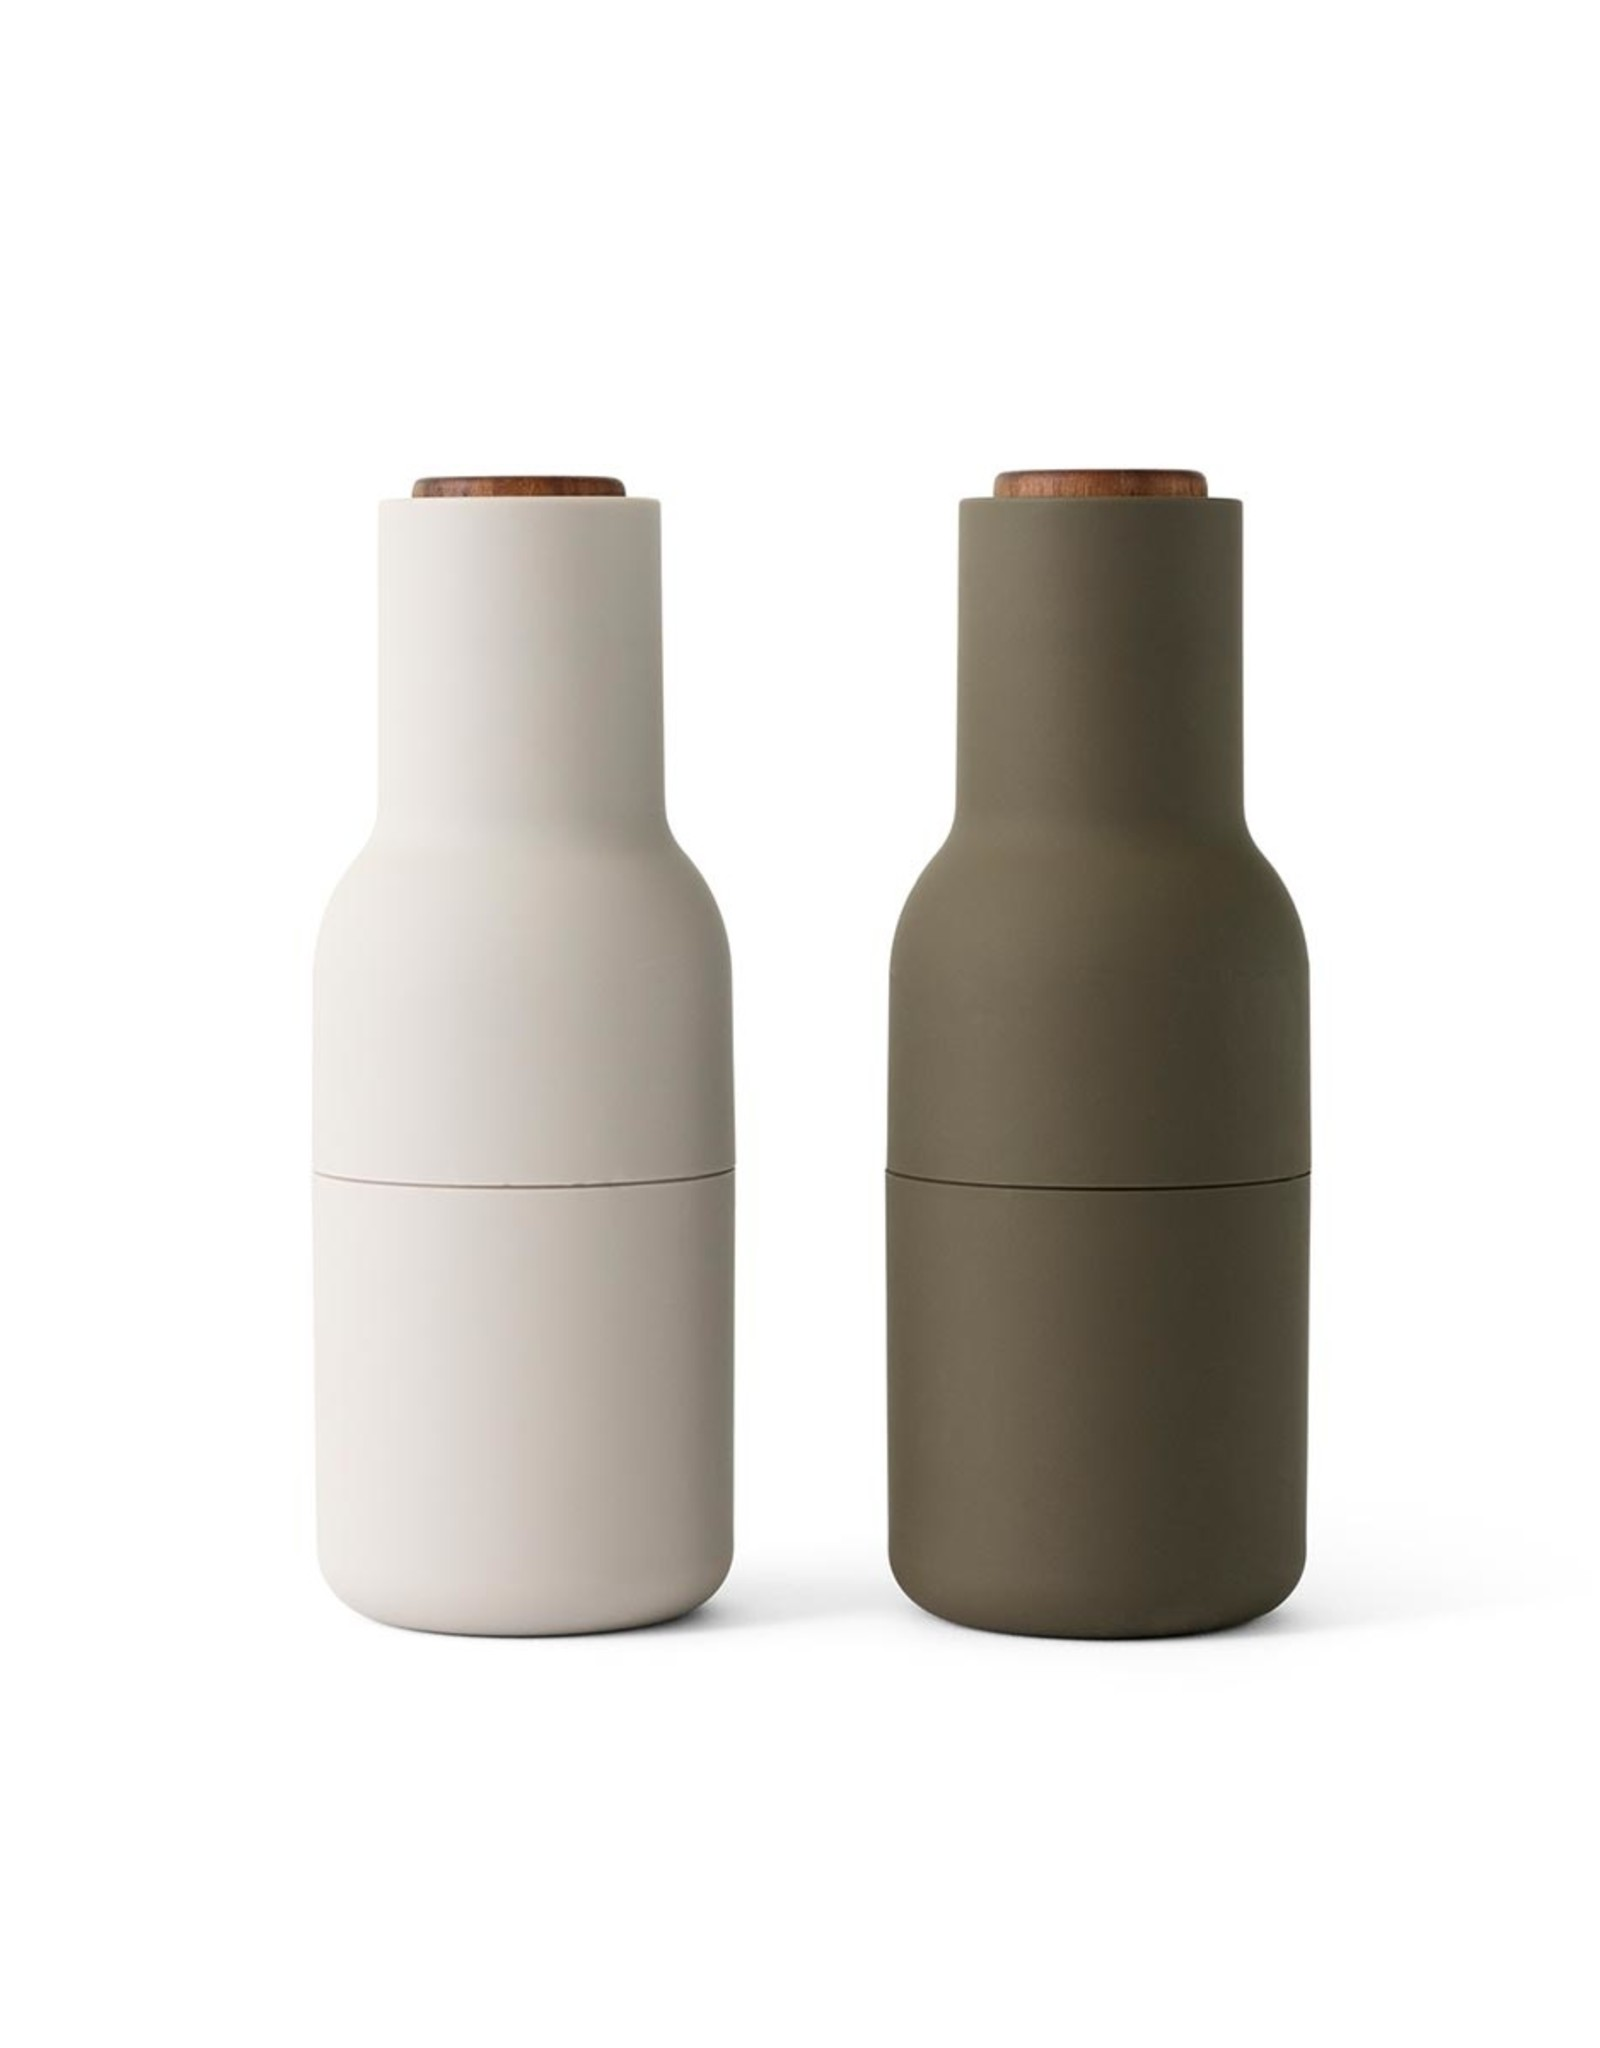 Bottle Grinders set by Norm Architects | Hunting green/beige | Walnut lid